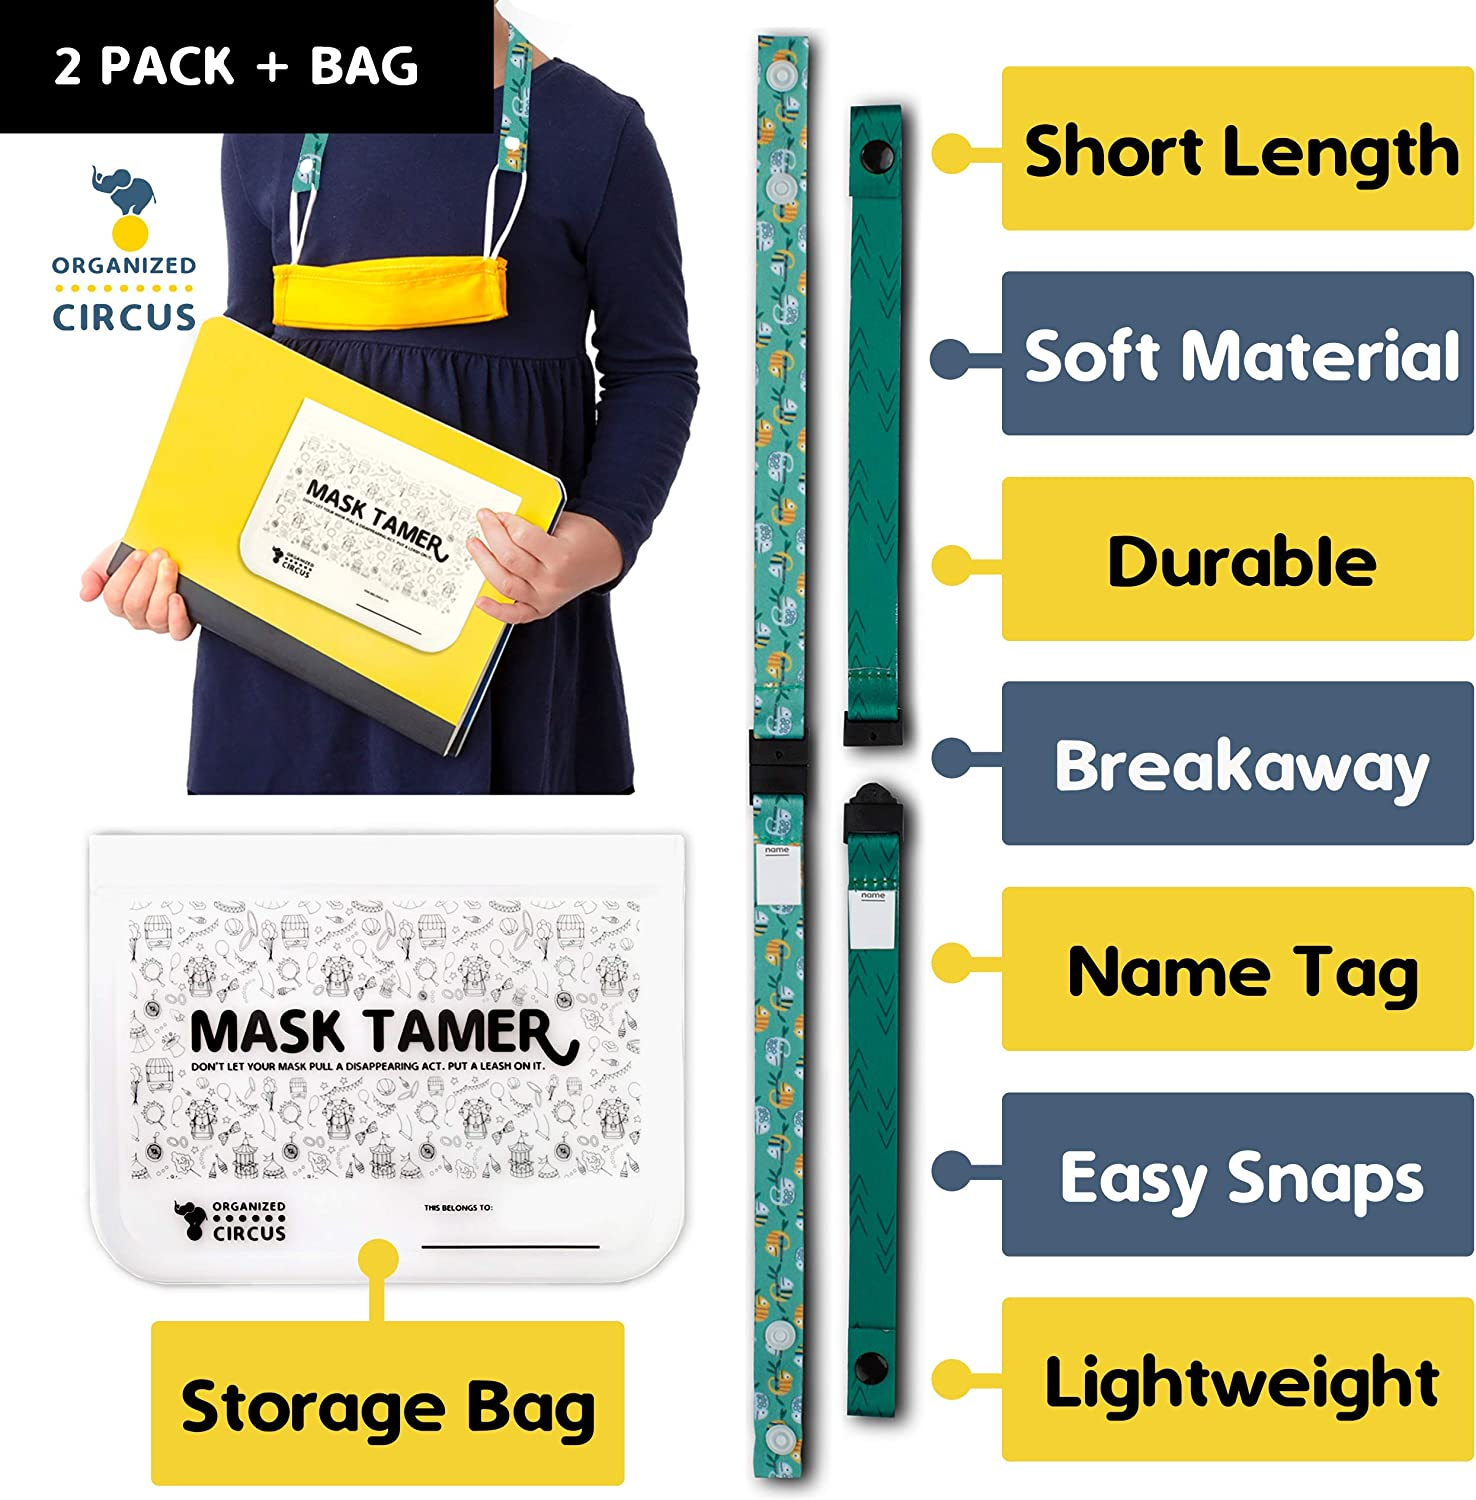 Pack of Two Face Mask Lanyards for Kids and One Face Mask Storage Case to Hold The Cute Breakaway Lanyard for Kids in School by Organized Circus Camo /& Grunge Breakaway Mask Lanyard for Kids